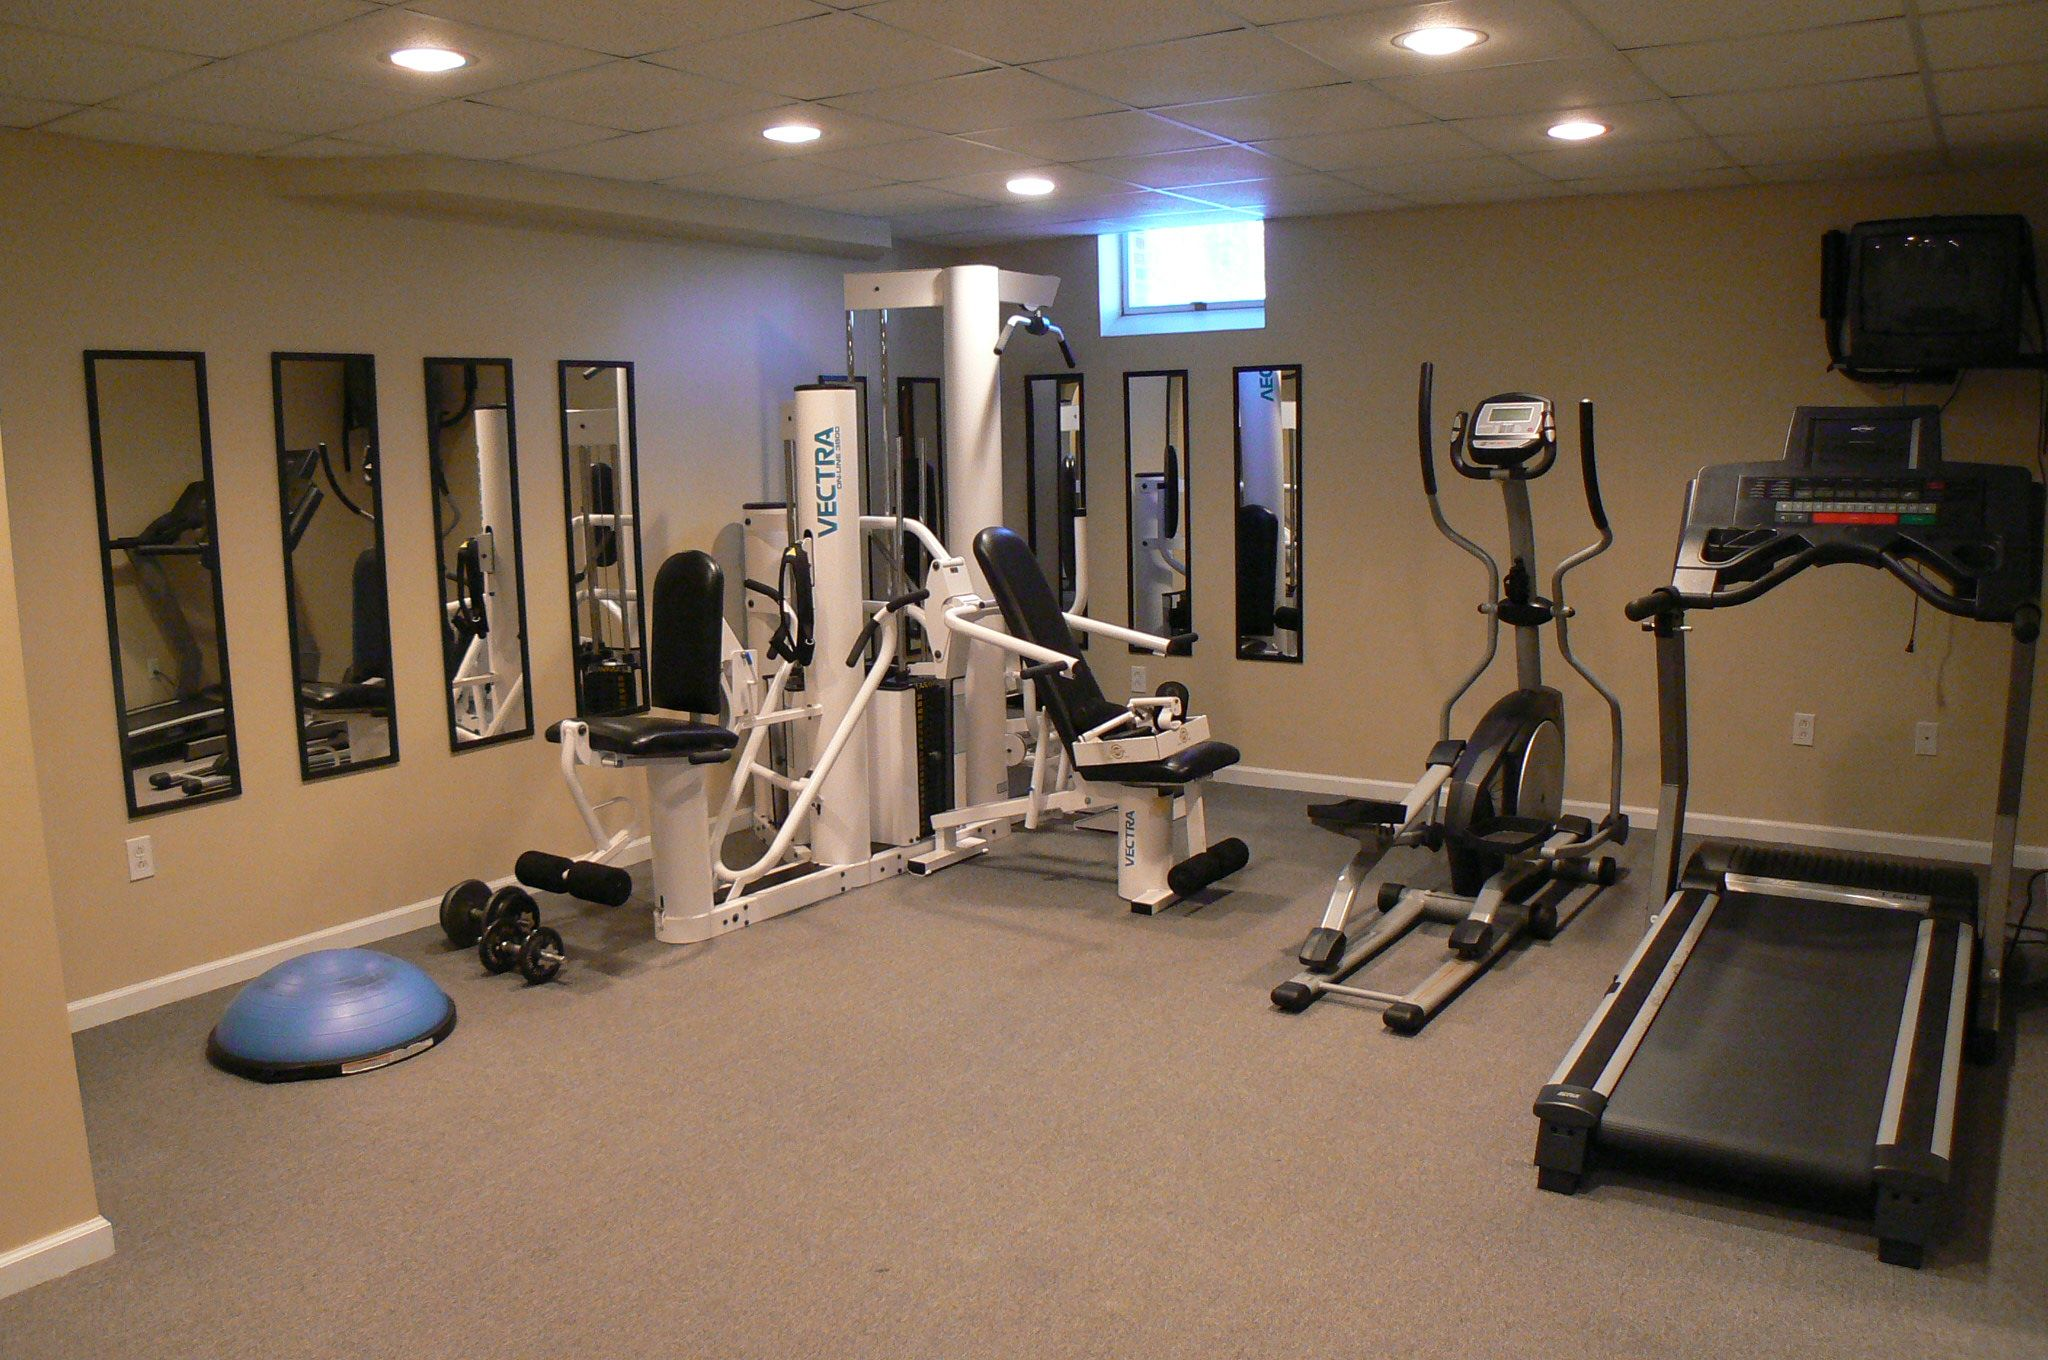 Weight room on pinterest home gyms basement gym and for Home gym room